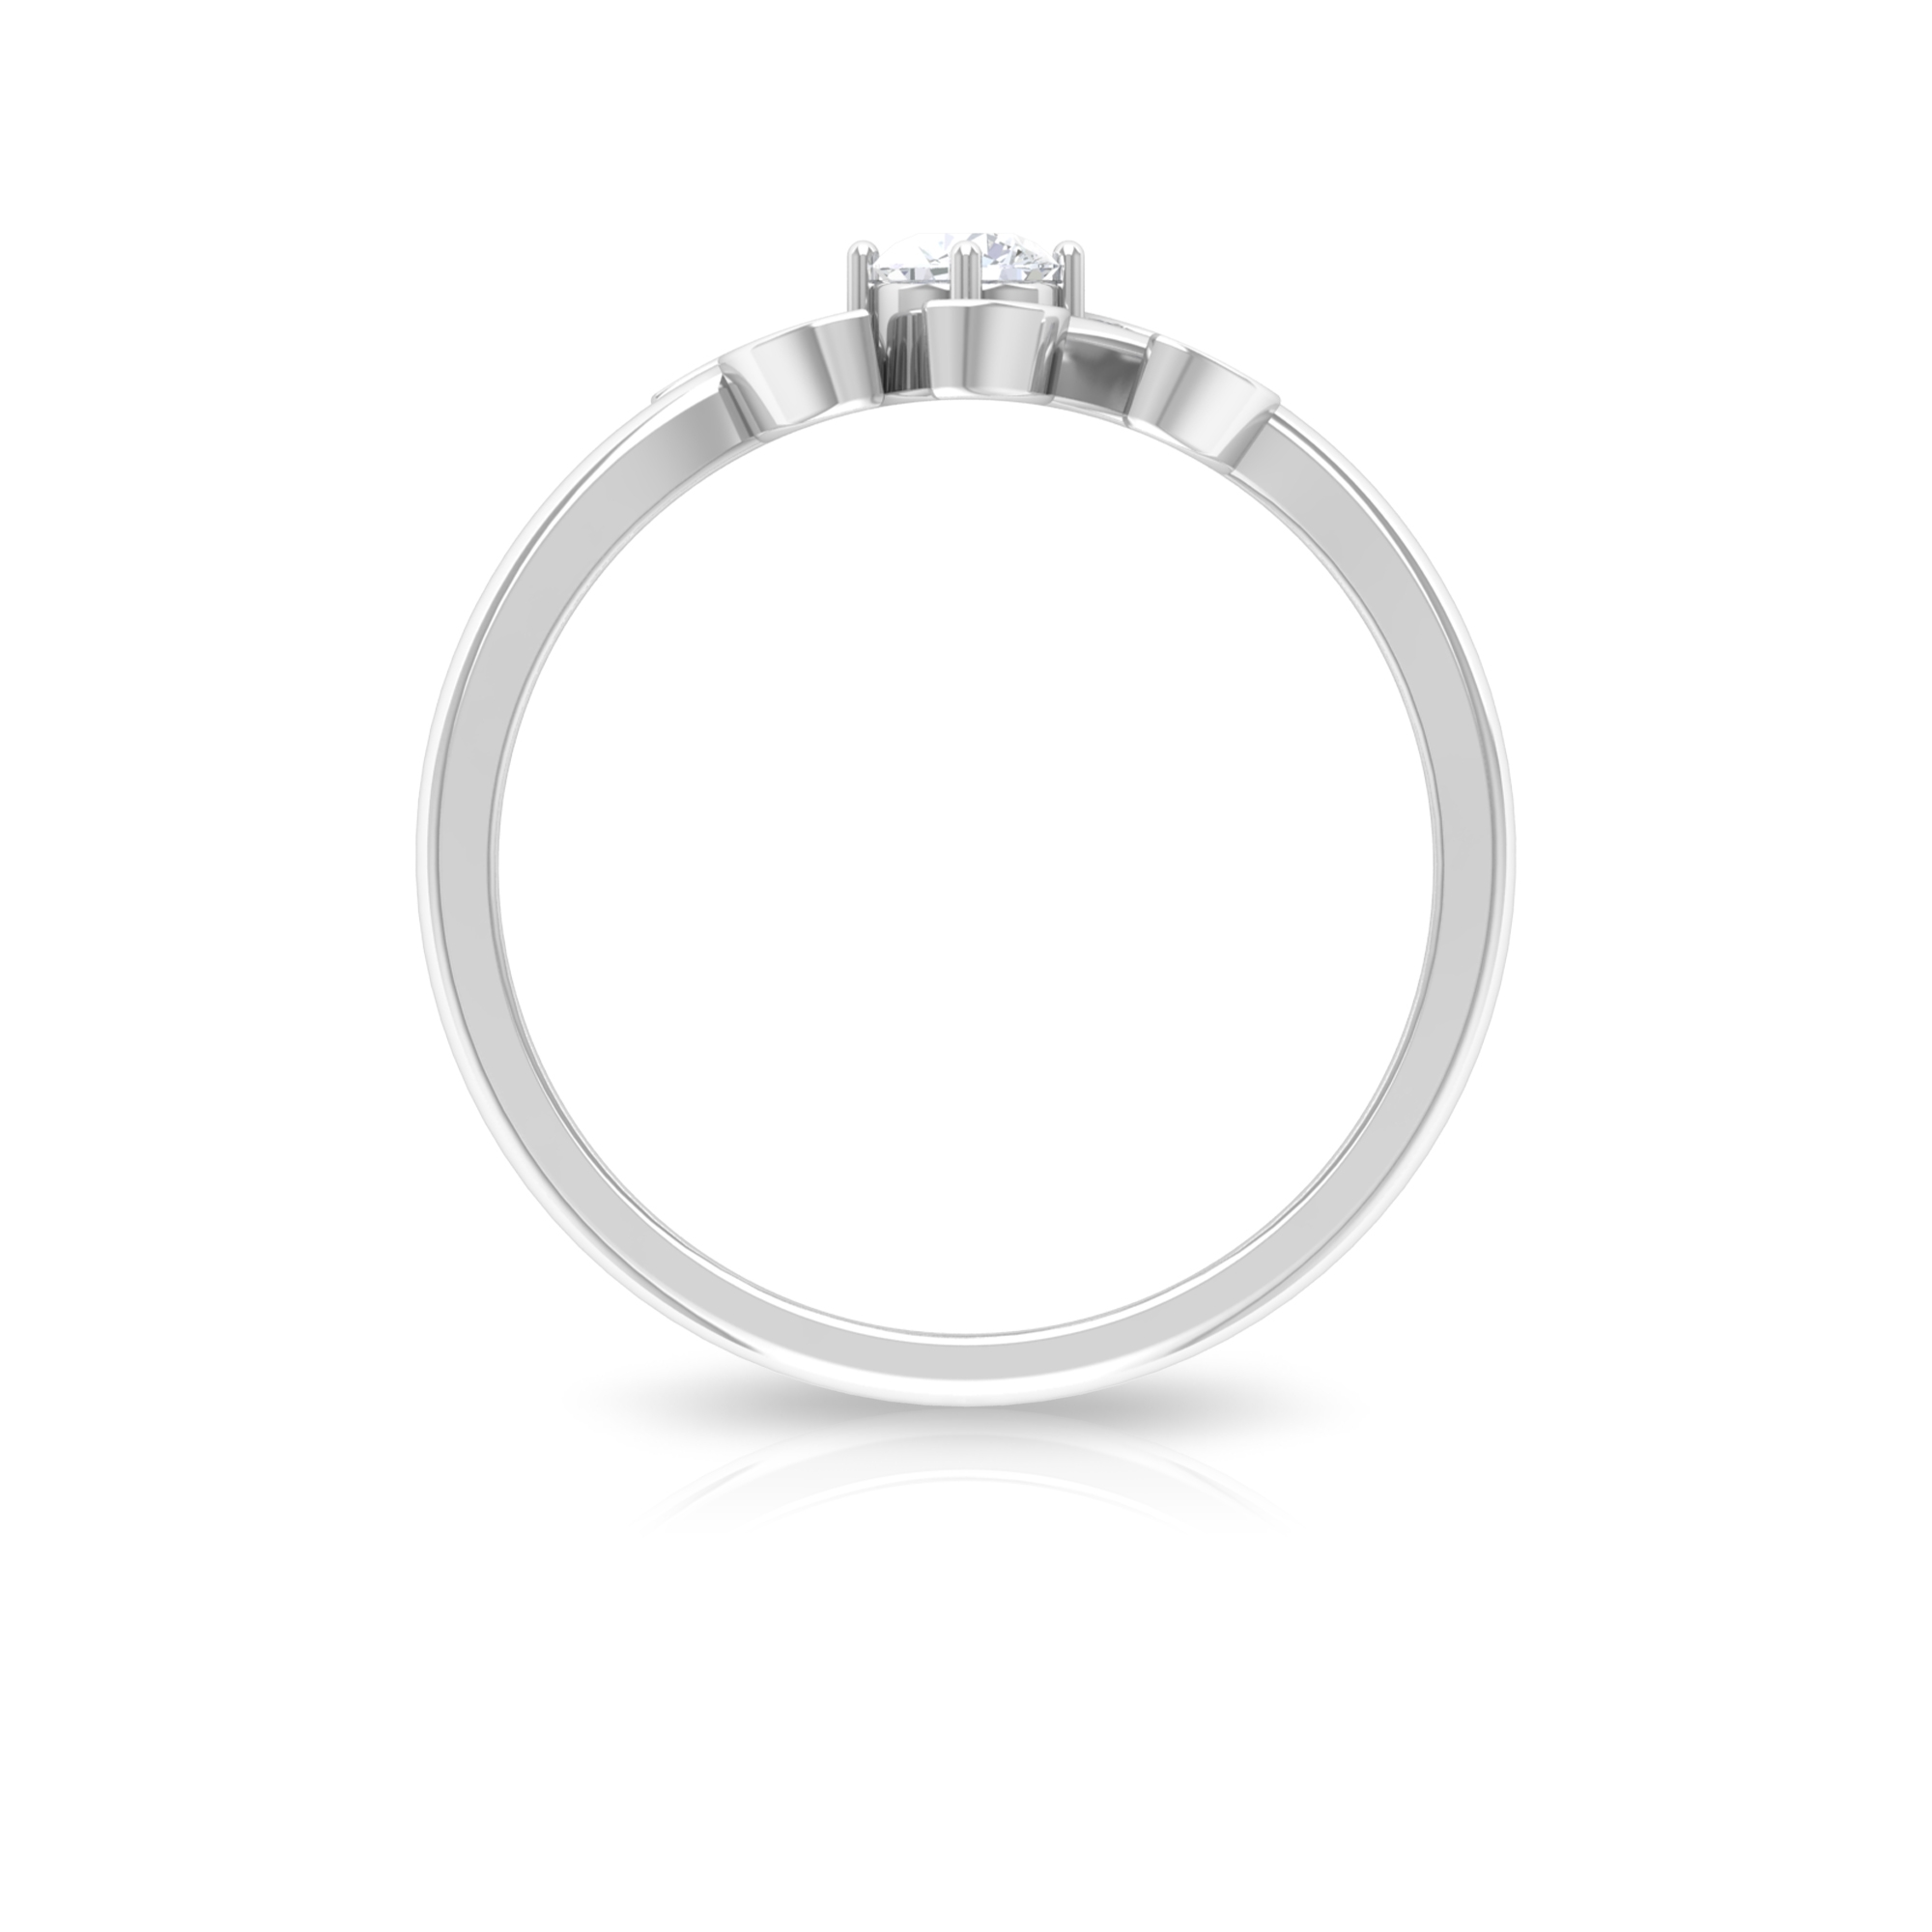 1/4 CT Round Cut Diamond Leaf Ring in Prong Setting